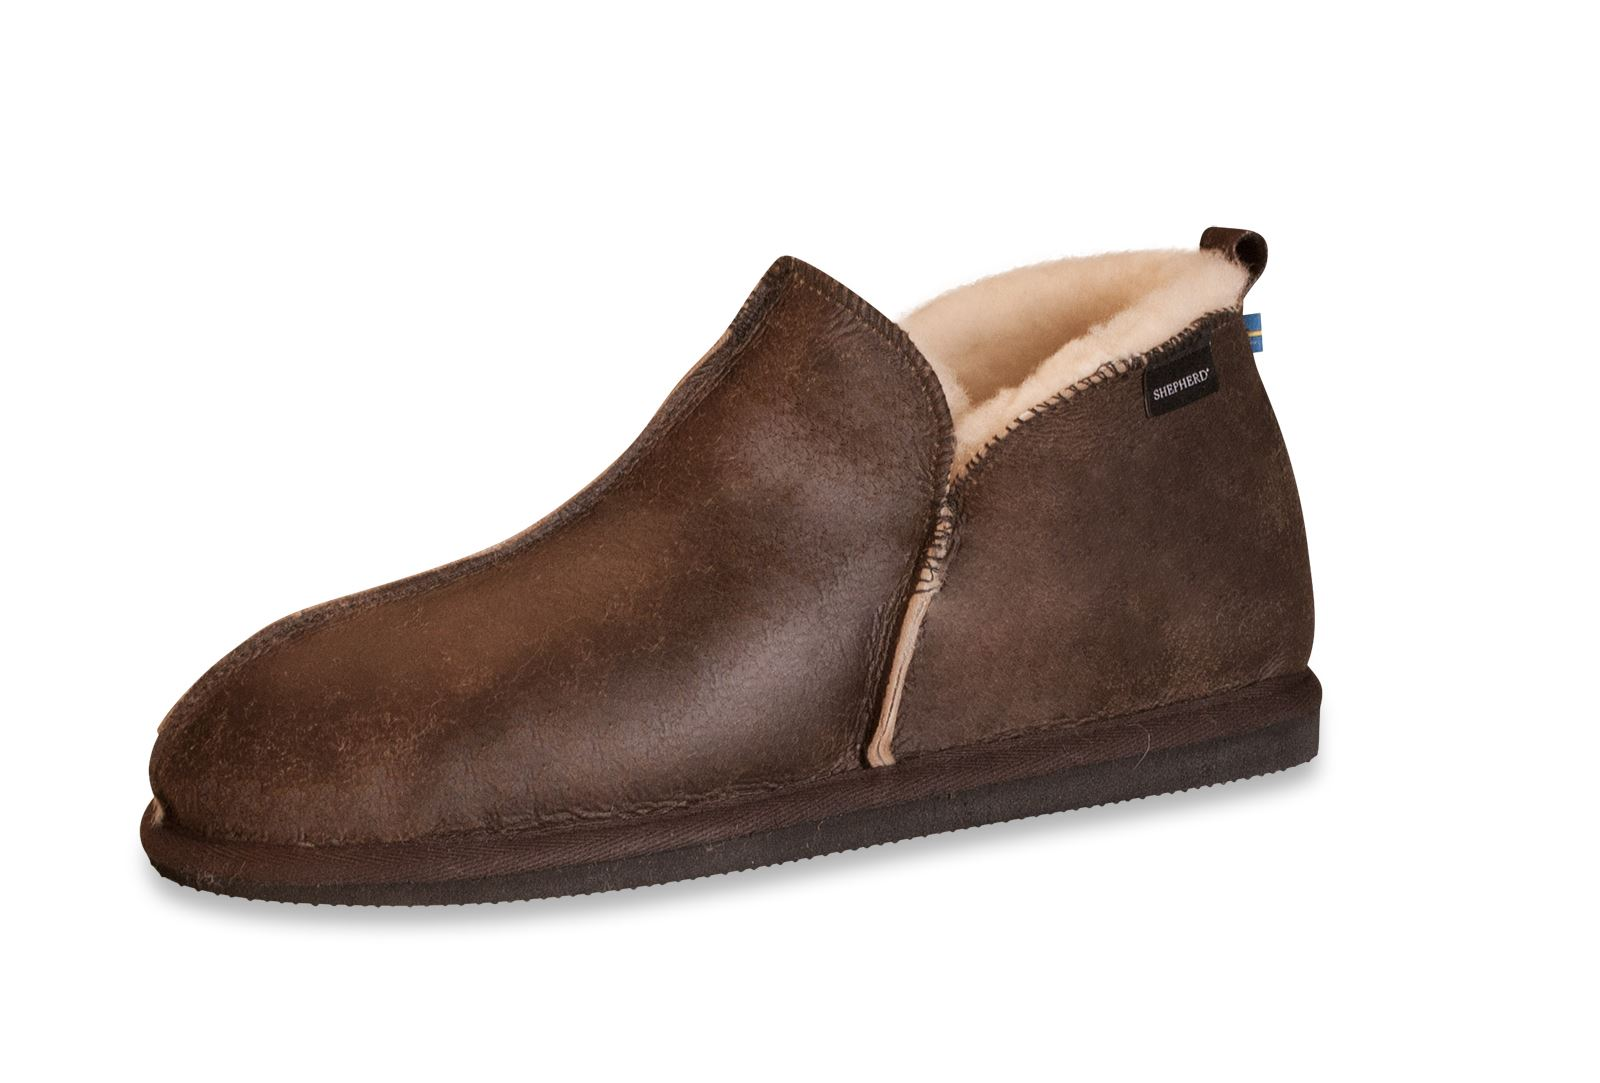 UK Direct. Buy online from our fantastic selection of Shoes, Boots, Trainers and Accessories. Fashion shoes and Comfort shoes. Huge range of branded footwear - online shop for Fly Flot, Pierre Cardin, Pavers, Hush Puppies, Loake, Padders, Bronx, Miss Sixty, Plus Adidas, Converse and many more.